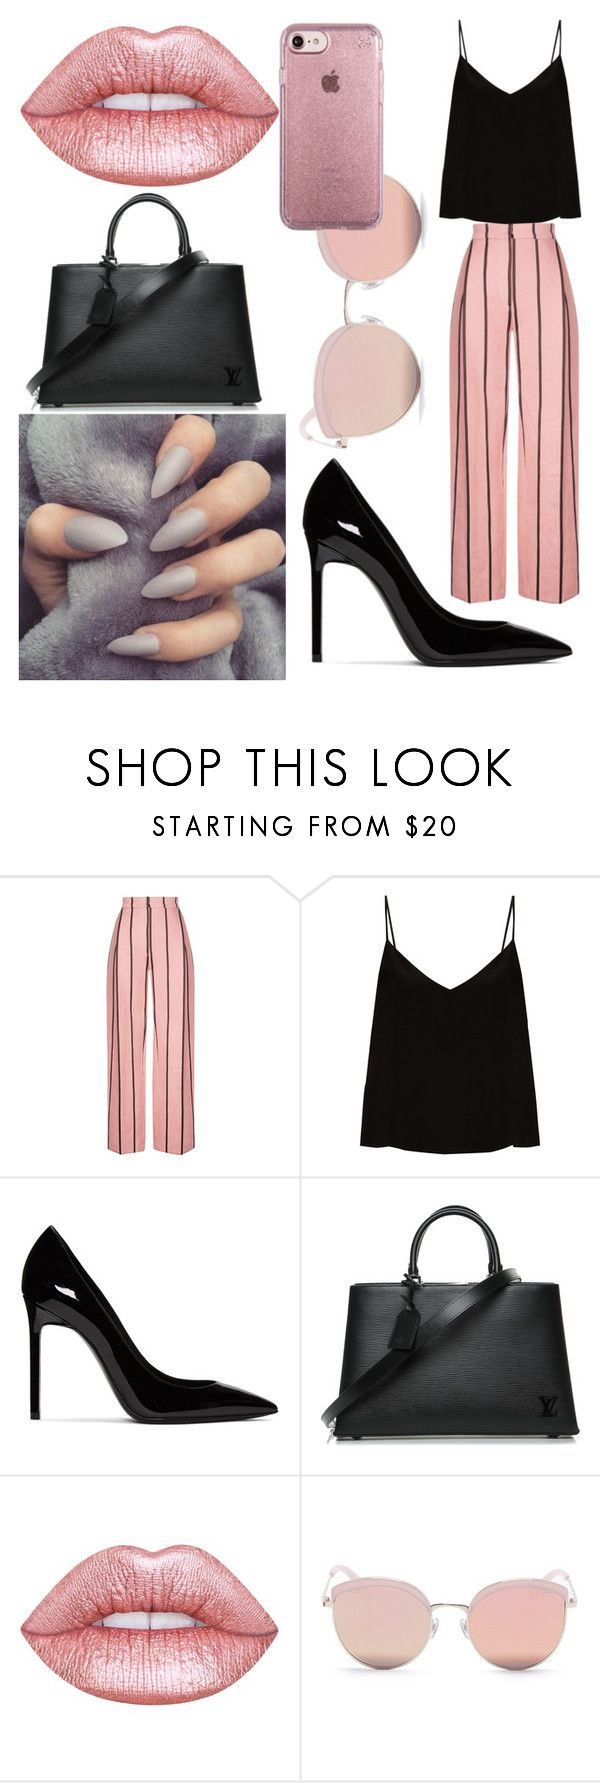 """Untitled #6"" by mashatishhenko ❤ liked on Polyvore featuring Raey, Yves Saint Laurent, Louis Vuitton, Lime Crime, Stephane + Christian and Speck"